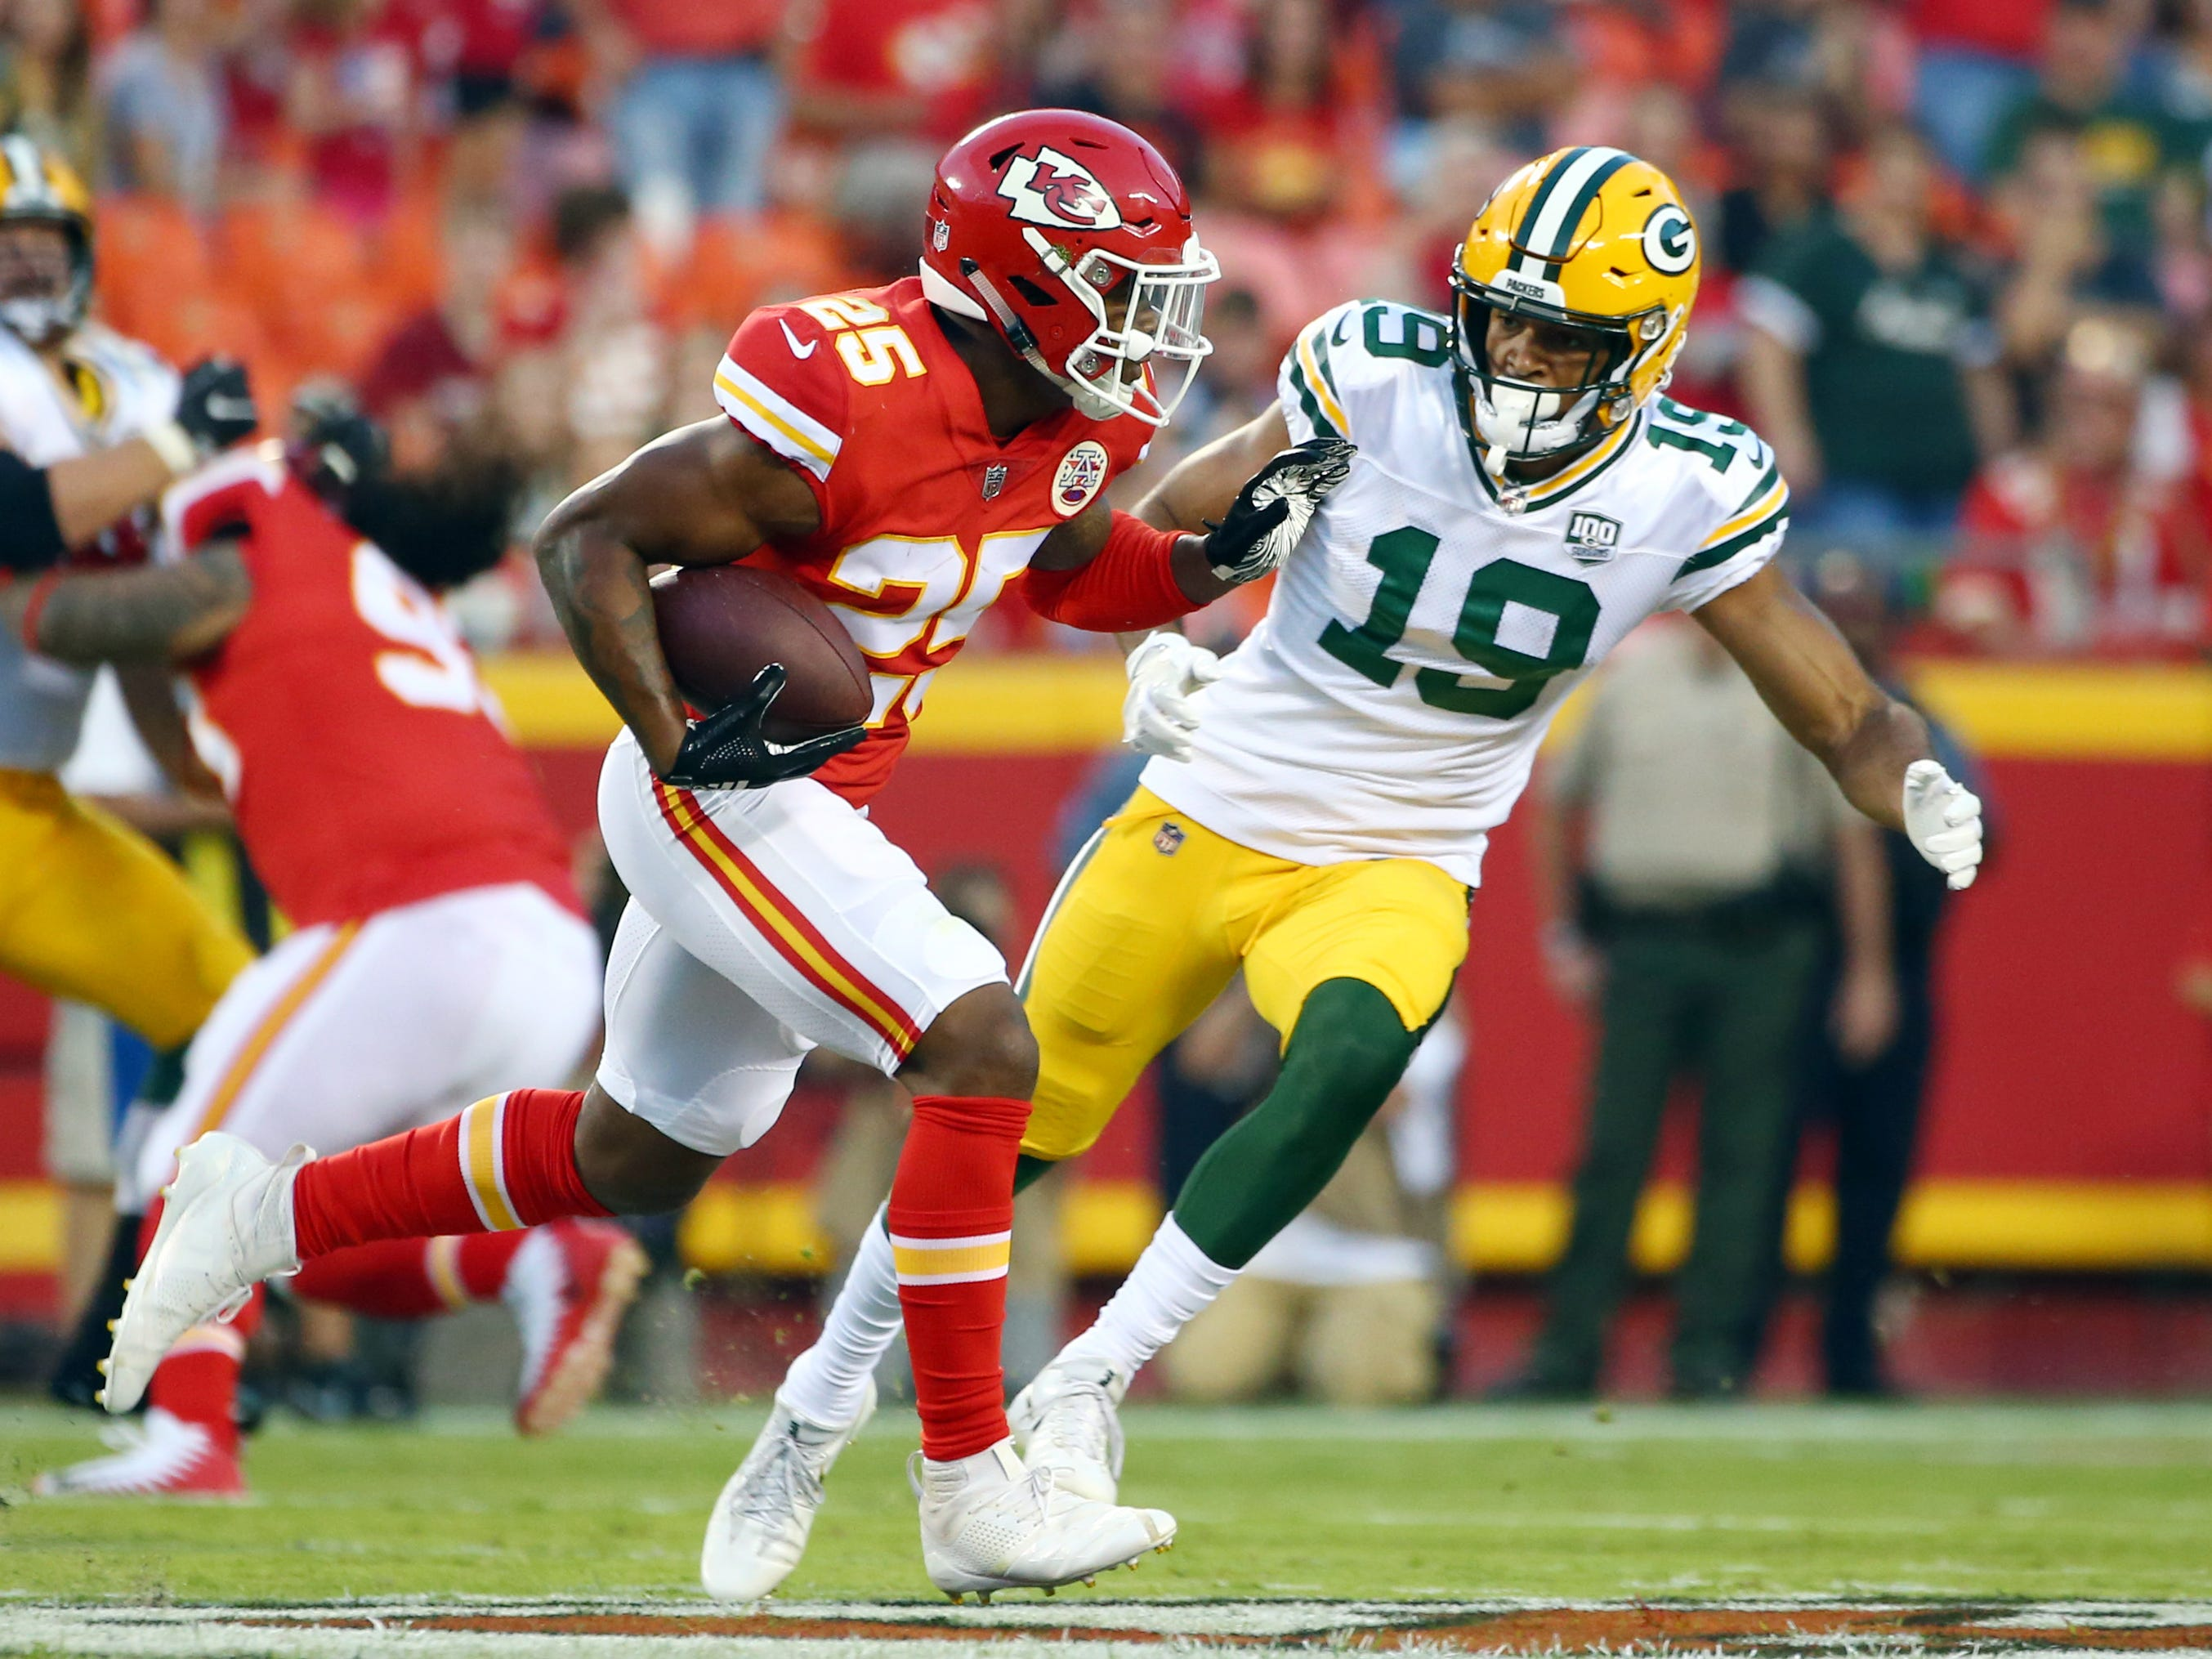 Aug 30, 2018; Kansas City, MO, USA; Kansas City Chiefs defensive back Armani Watts (25) returns an interception as Green Bay Packers wide receiver Equanimeous St. Brown (19) defends in the first half at Arrowhead Stadium.